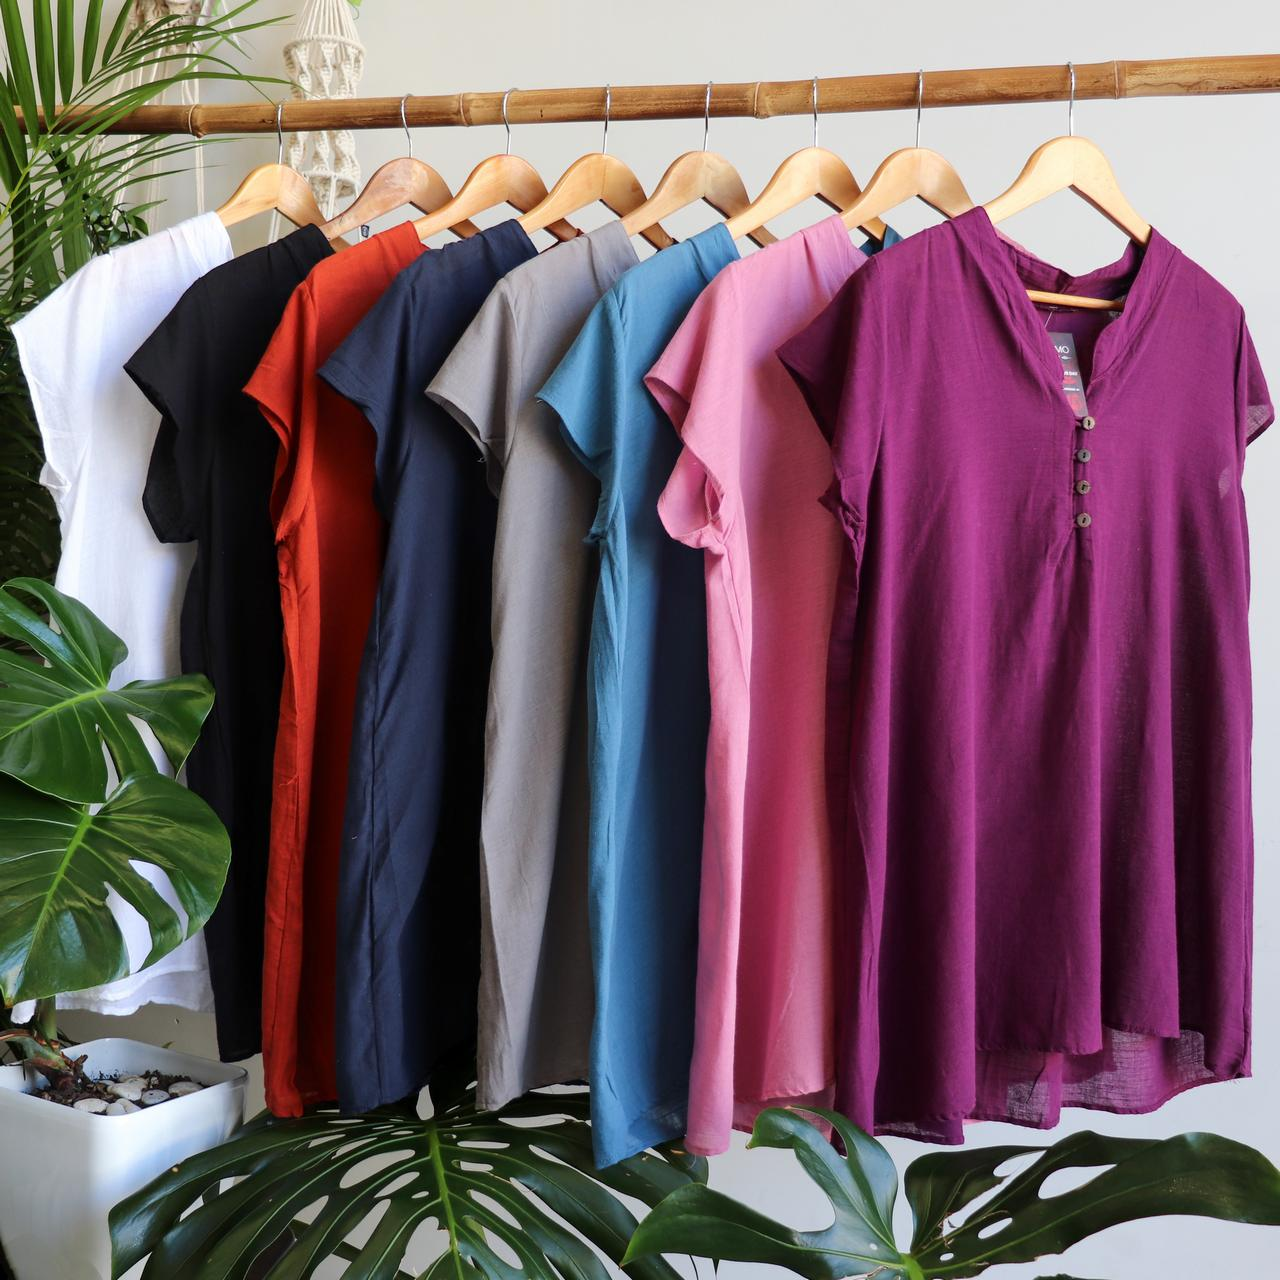 Bamboo Clothing Noosa: All Natural Cottons